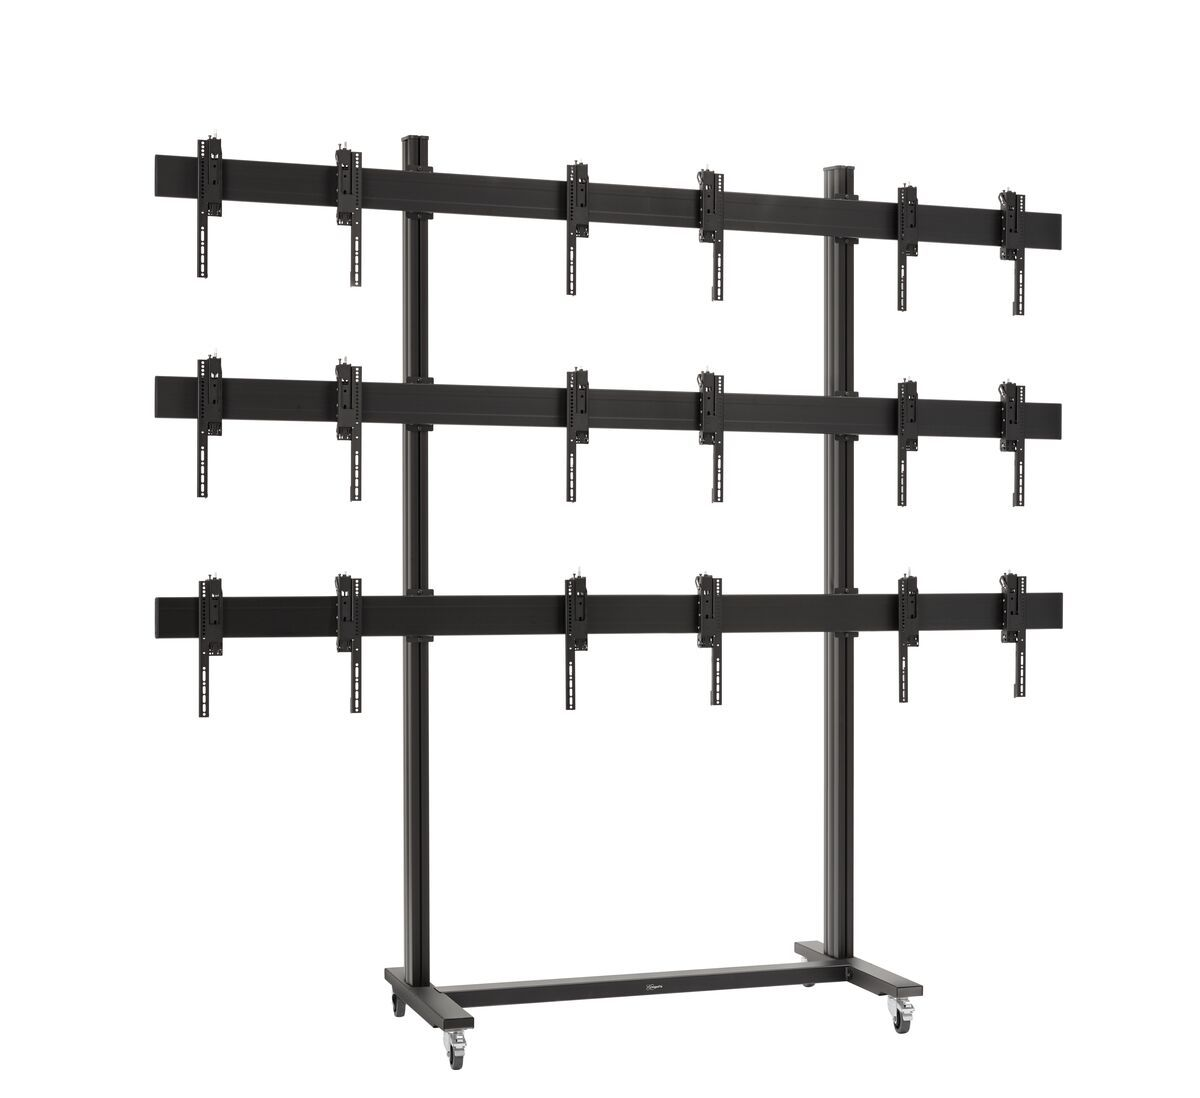 Vogel's TVW3347 Video wall trolley 3x3 - Product